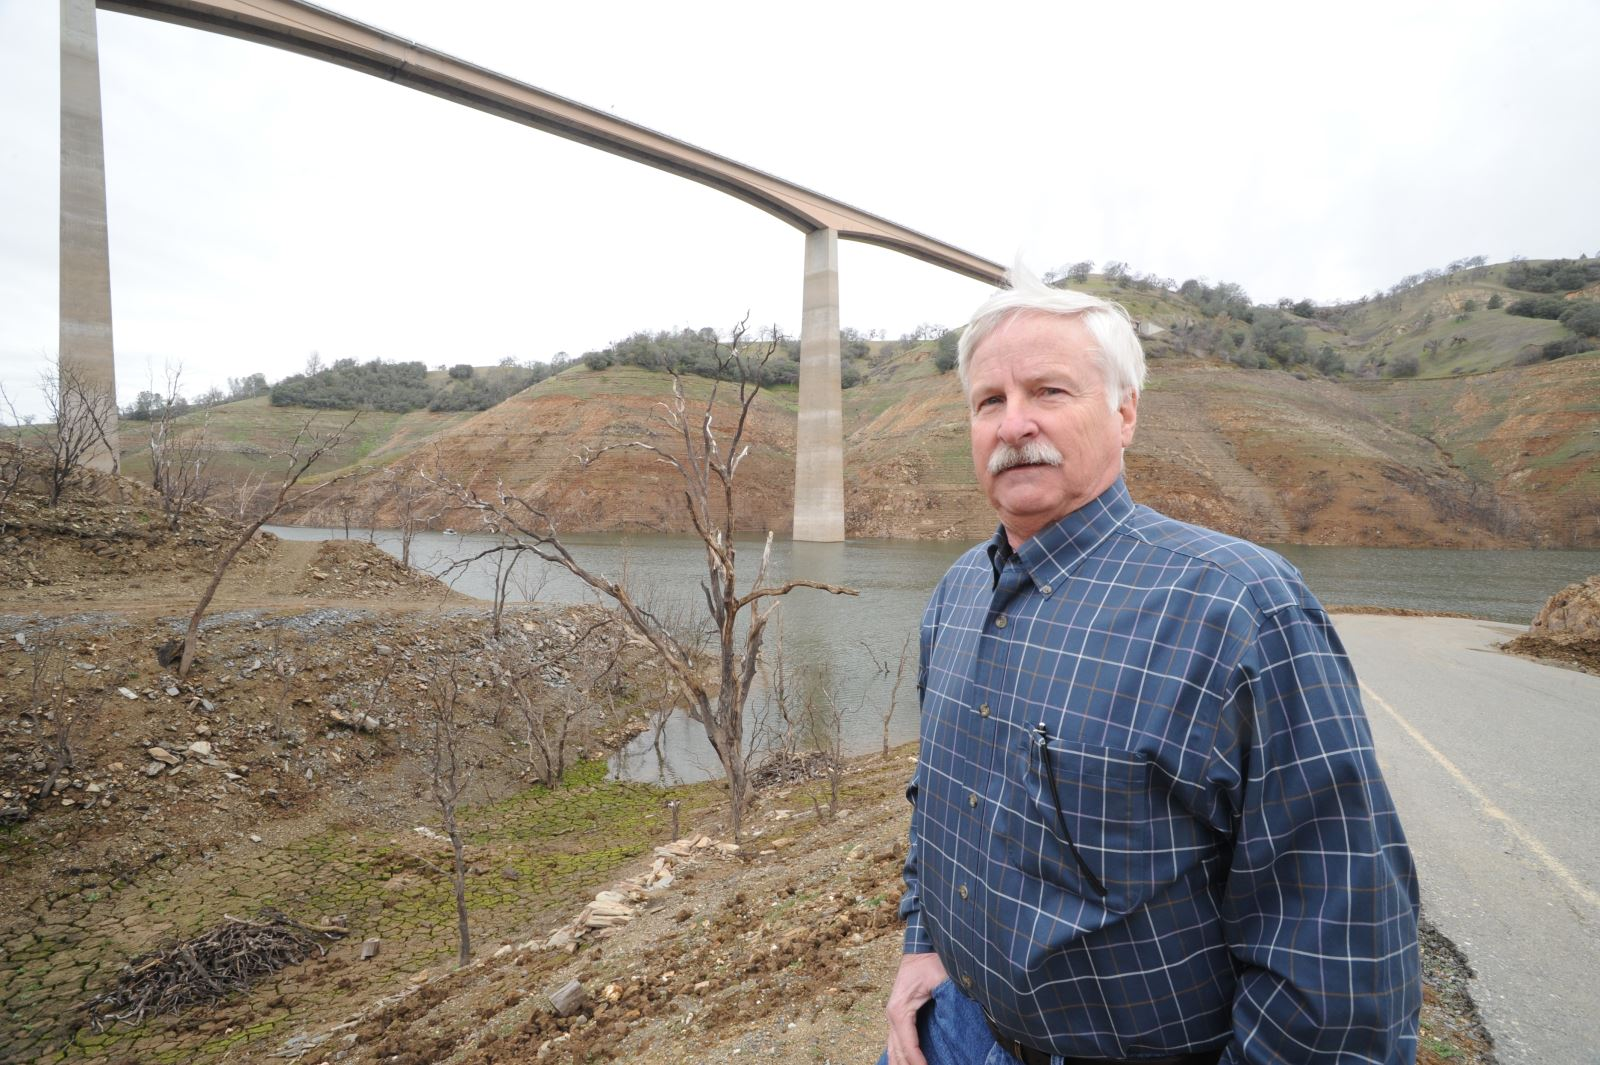 Lake tulloch alliance new melones future for Lake tulloch fishing